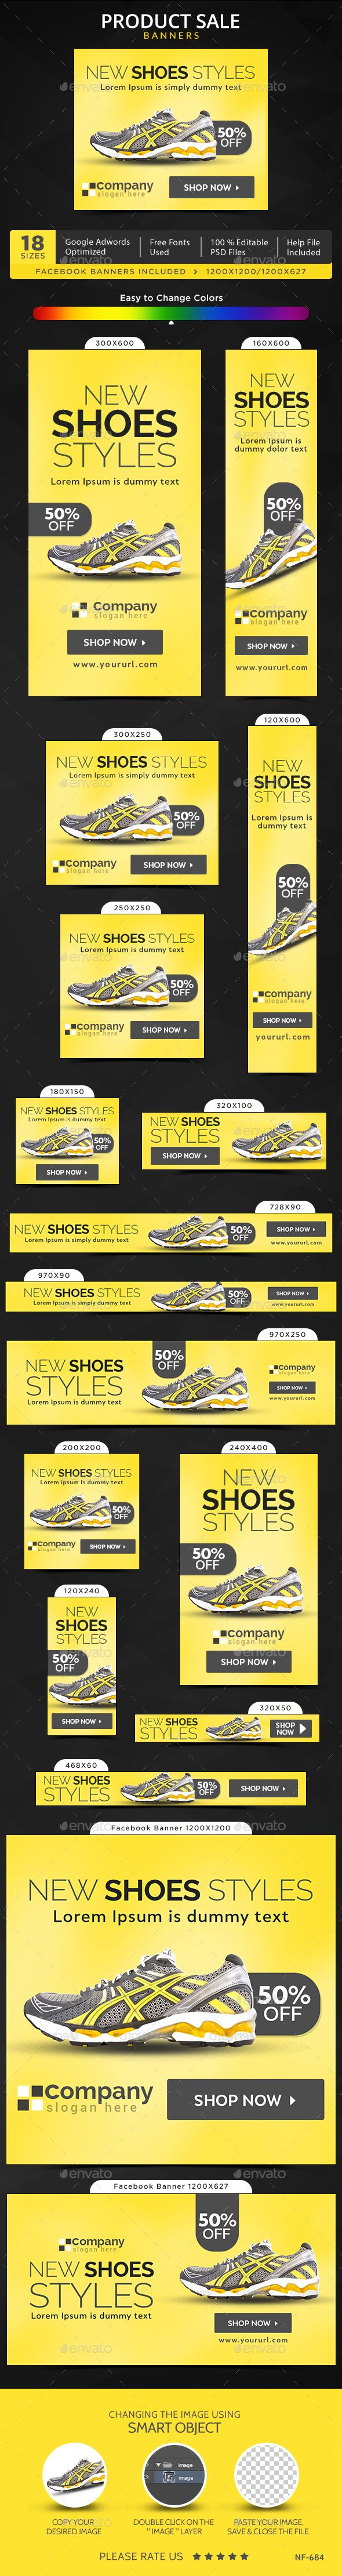 Product Sale Web Banners Template #design #ad Download: http://graphicriver.net/item/product-sale-banners/13110253?ref=ksioks